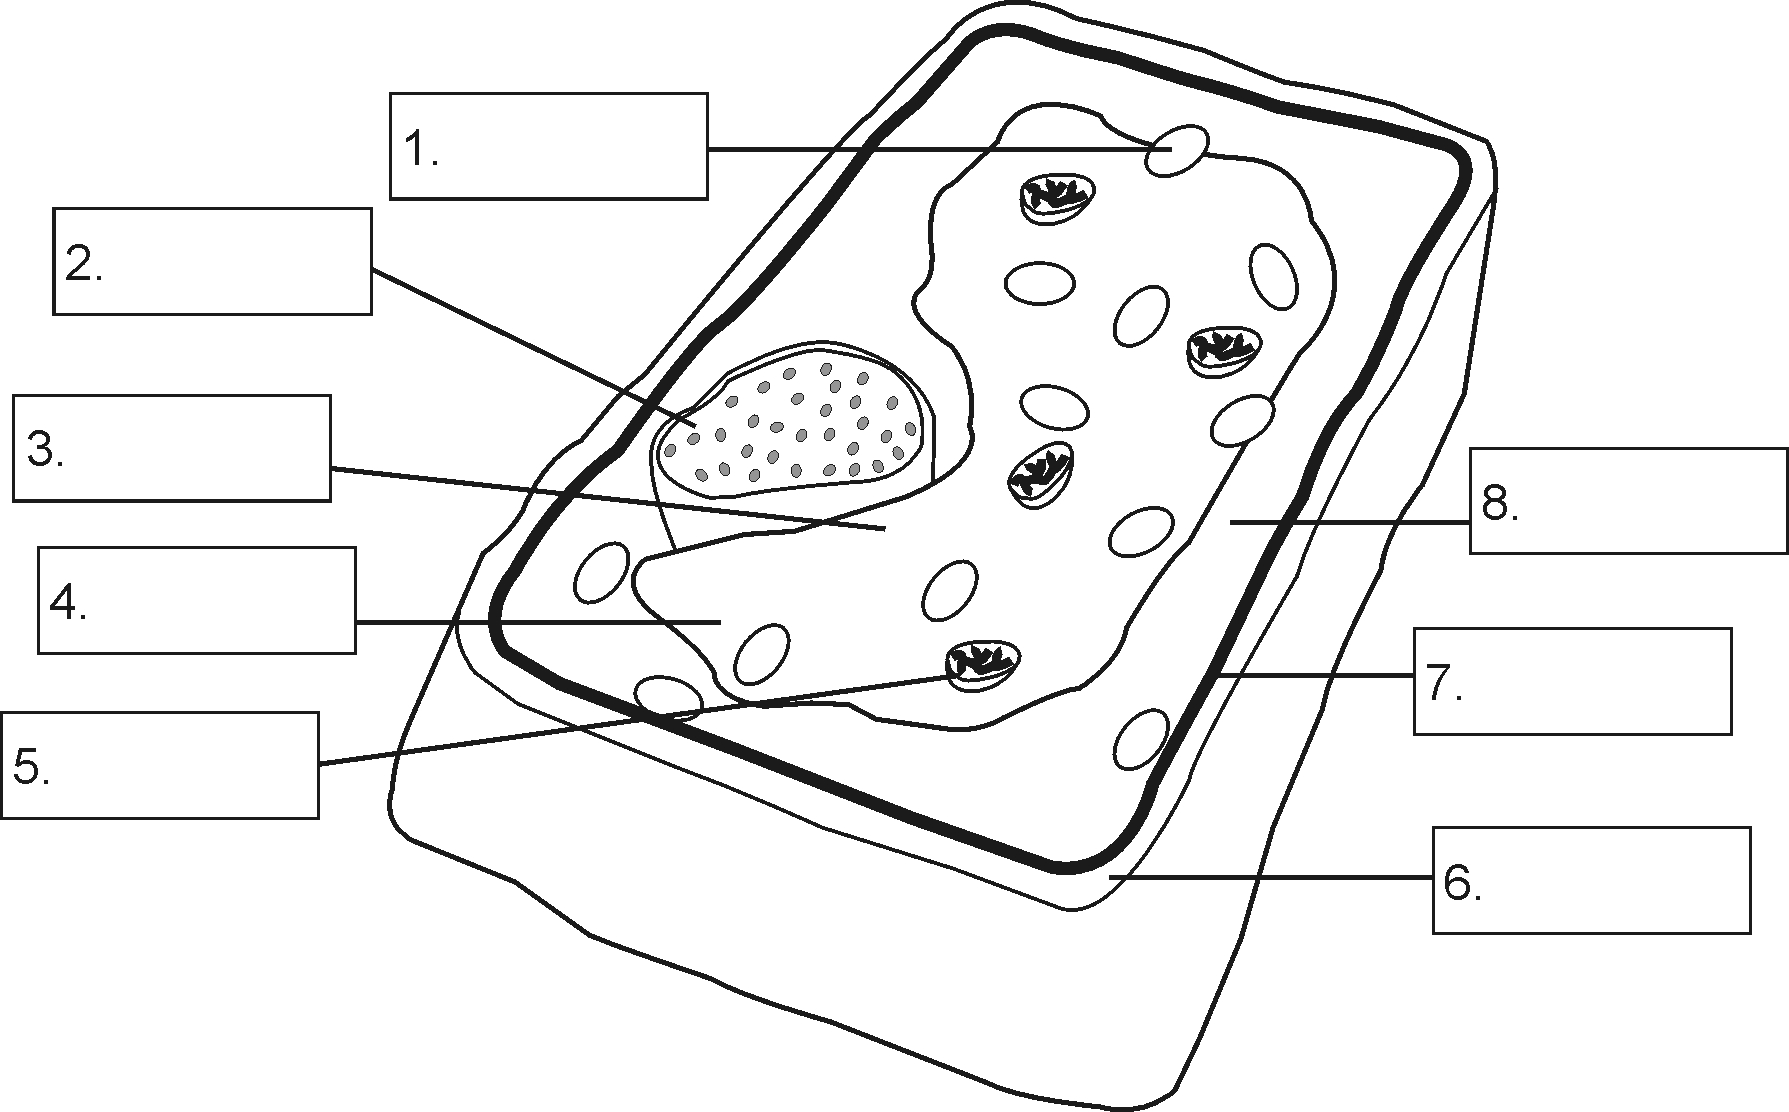 Plant Cell Drawing With Labels At Getdrawings